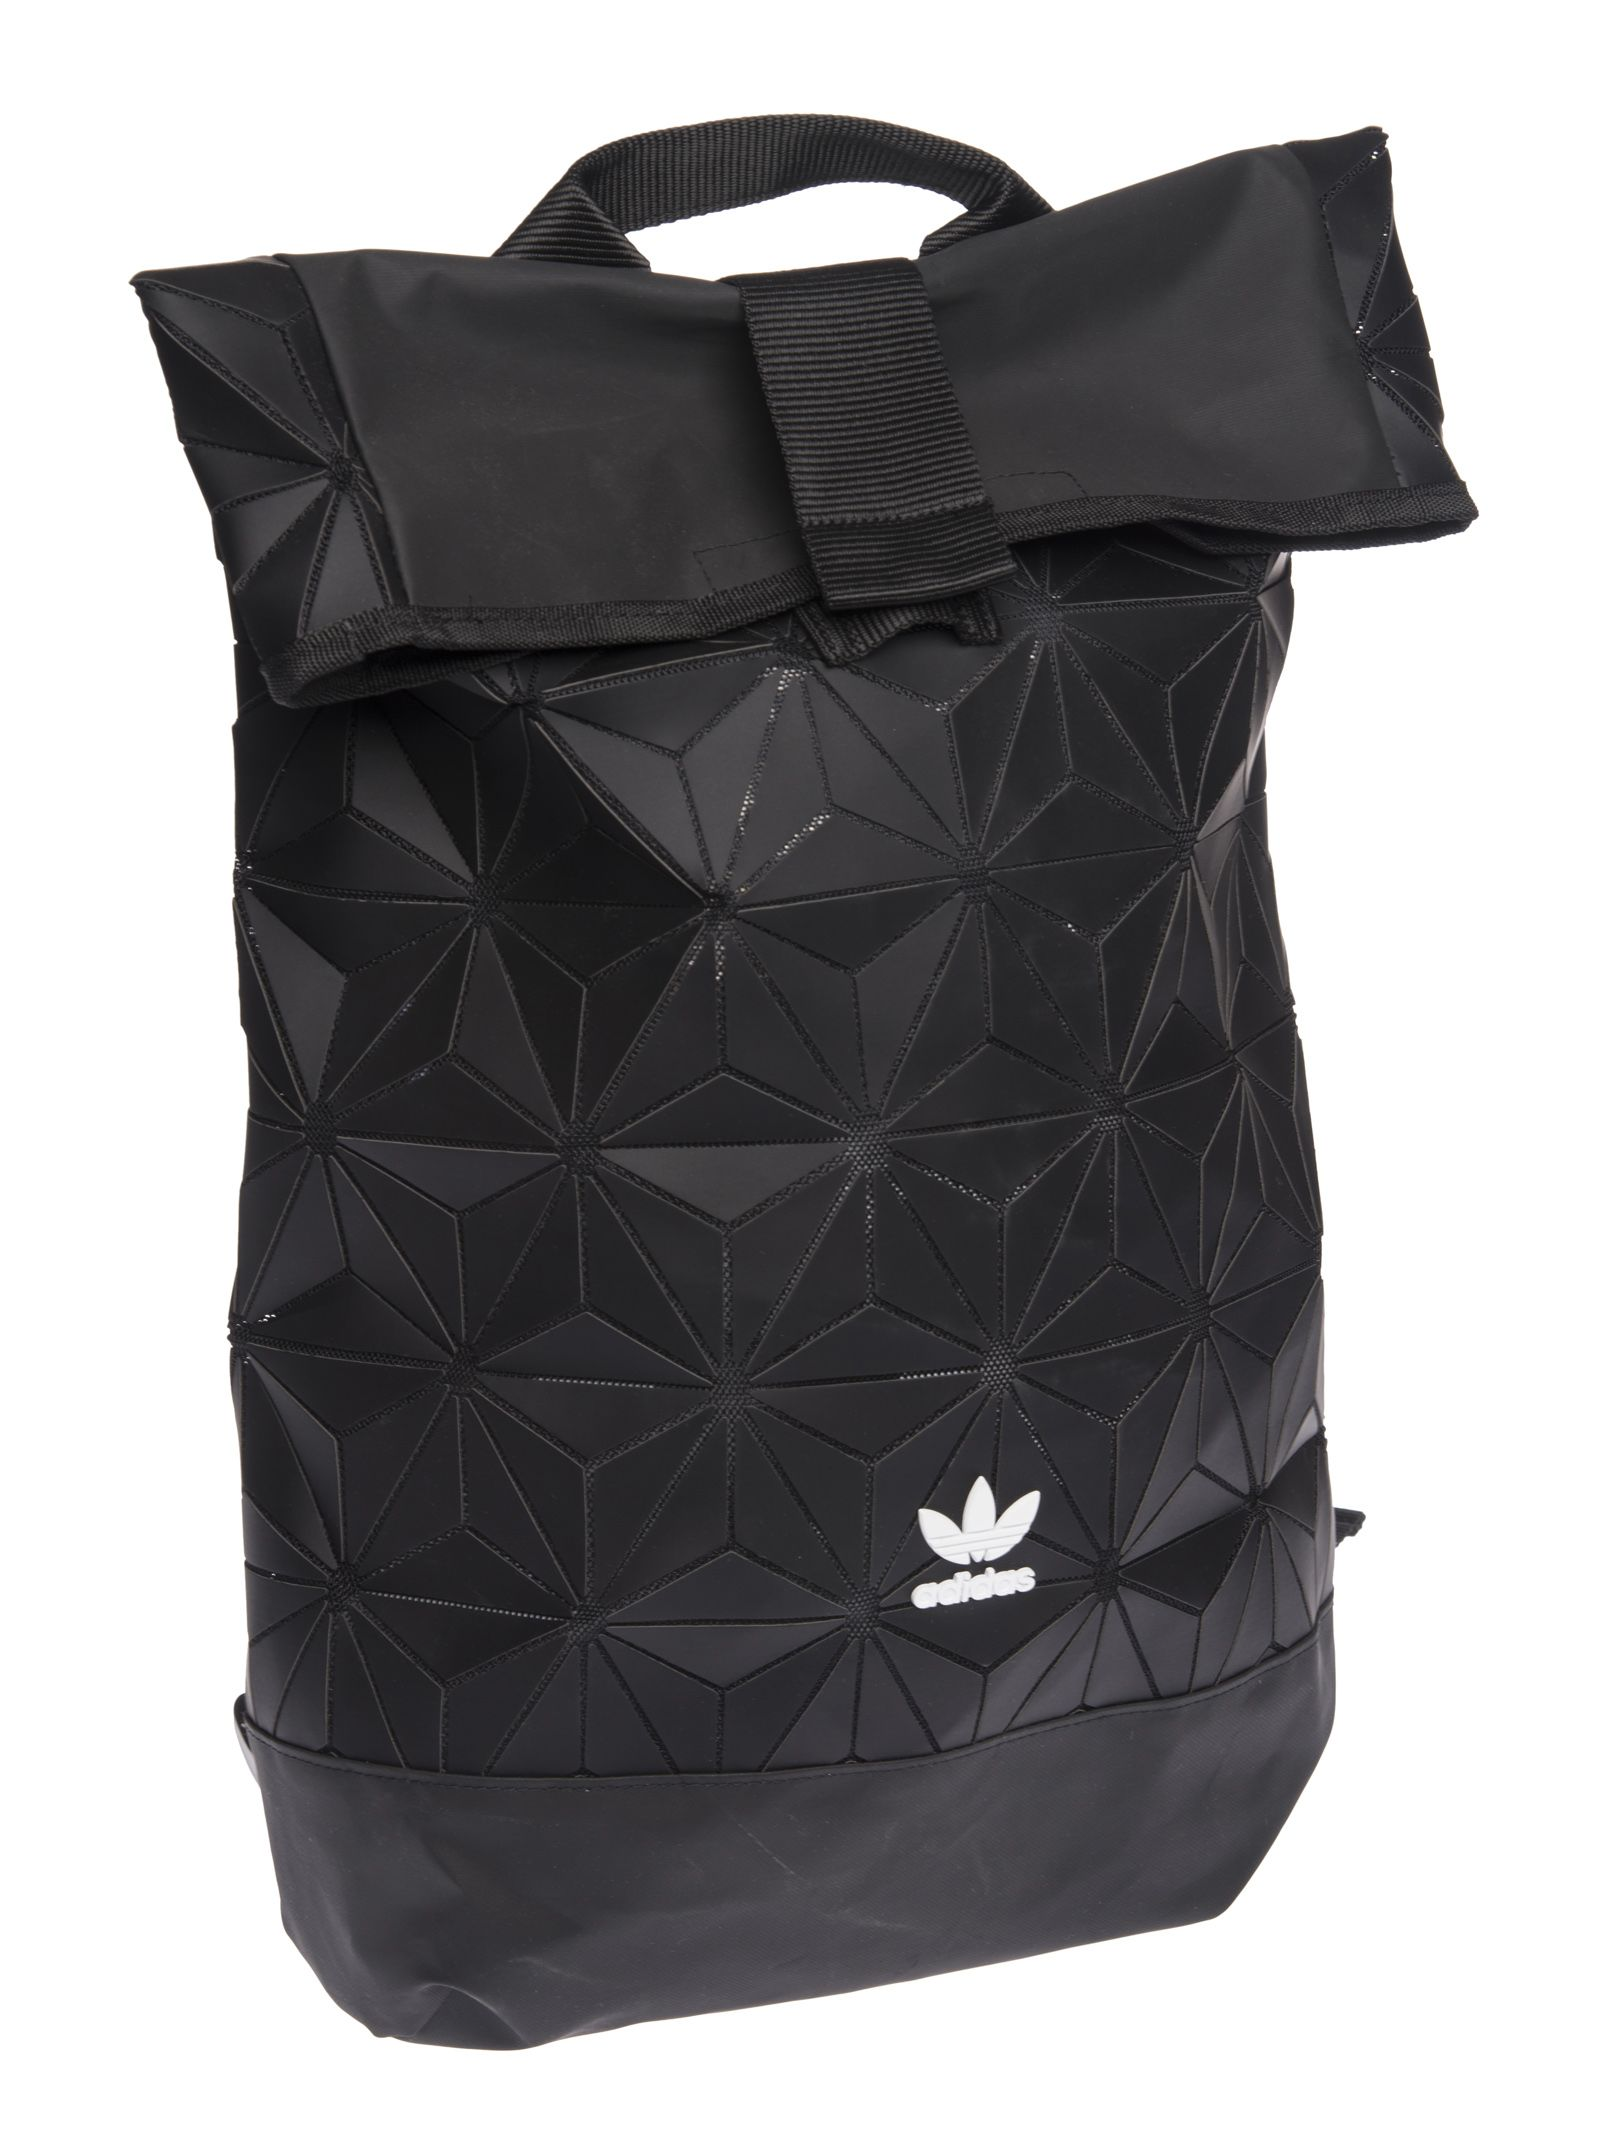 Adidas Originals Urban Backpack - Black Adidas Originals Urban Backpack -  Black ... cac7a8f95b315